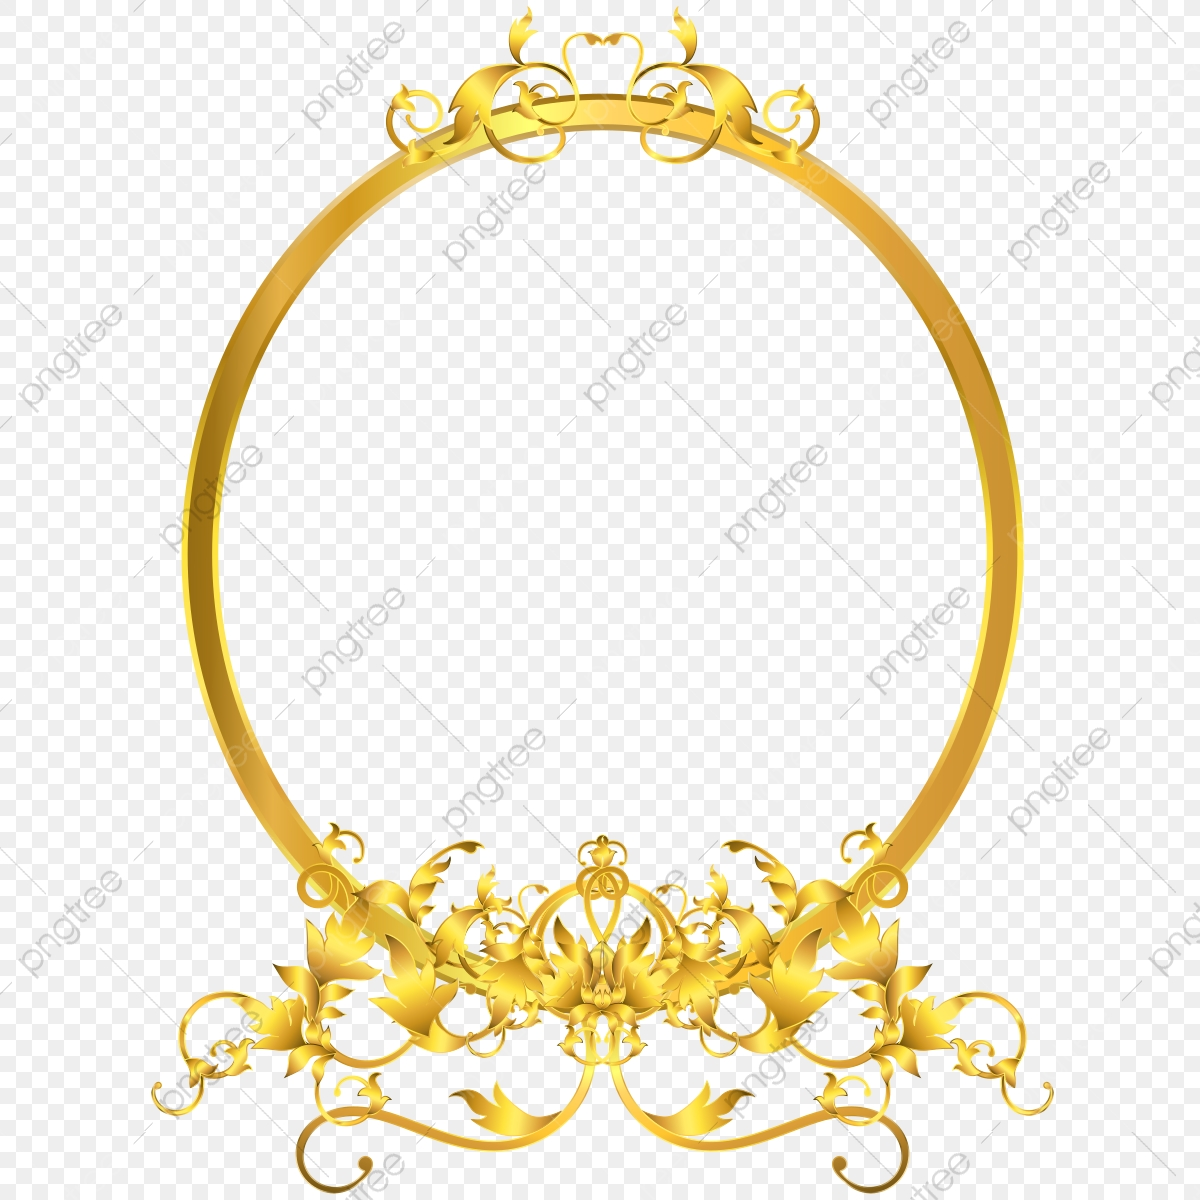 Elegant Mirror Decor With Victorian Ornaments Golden Frame Leaves Branch Border Png And Vector With Transparent Background For Free Download